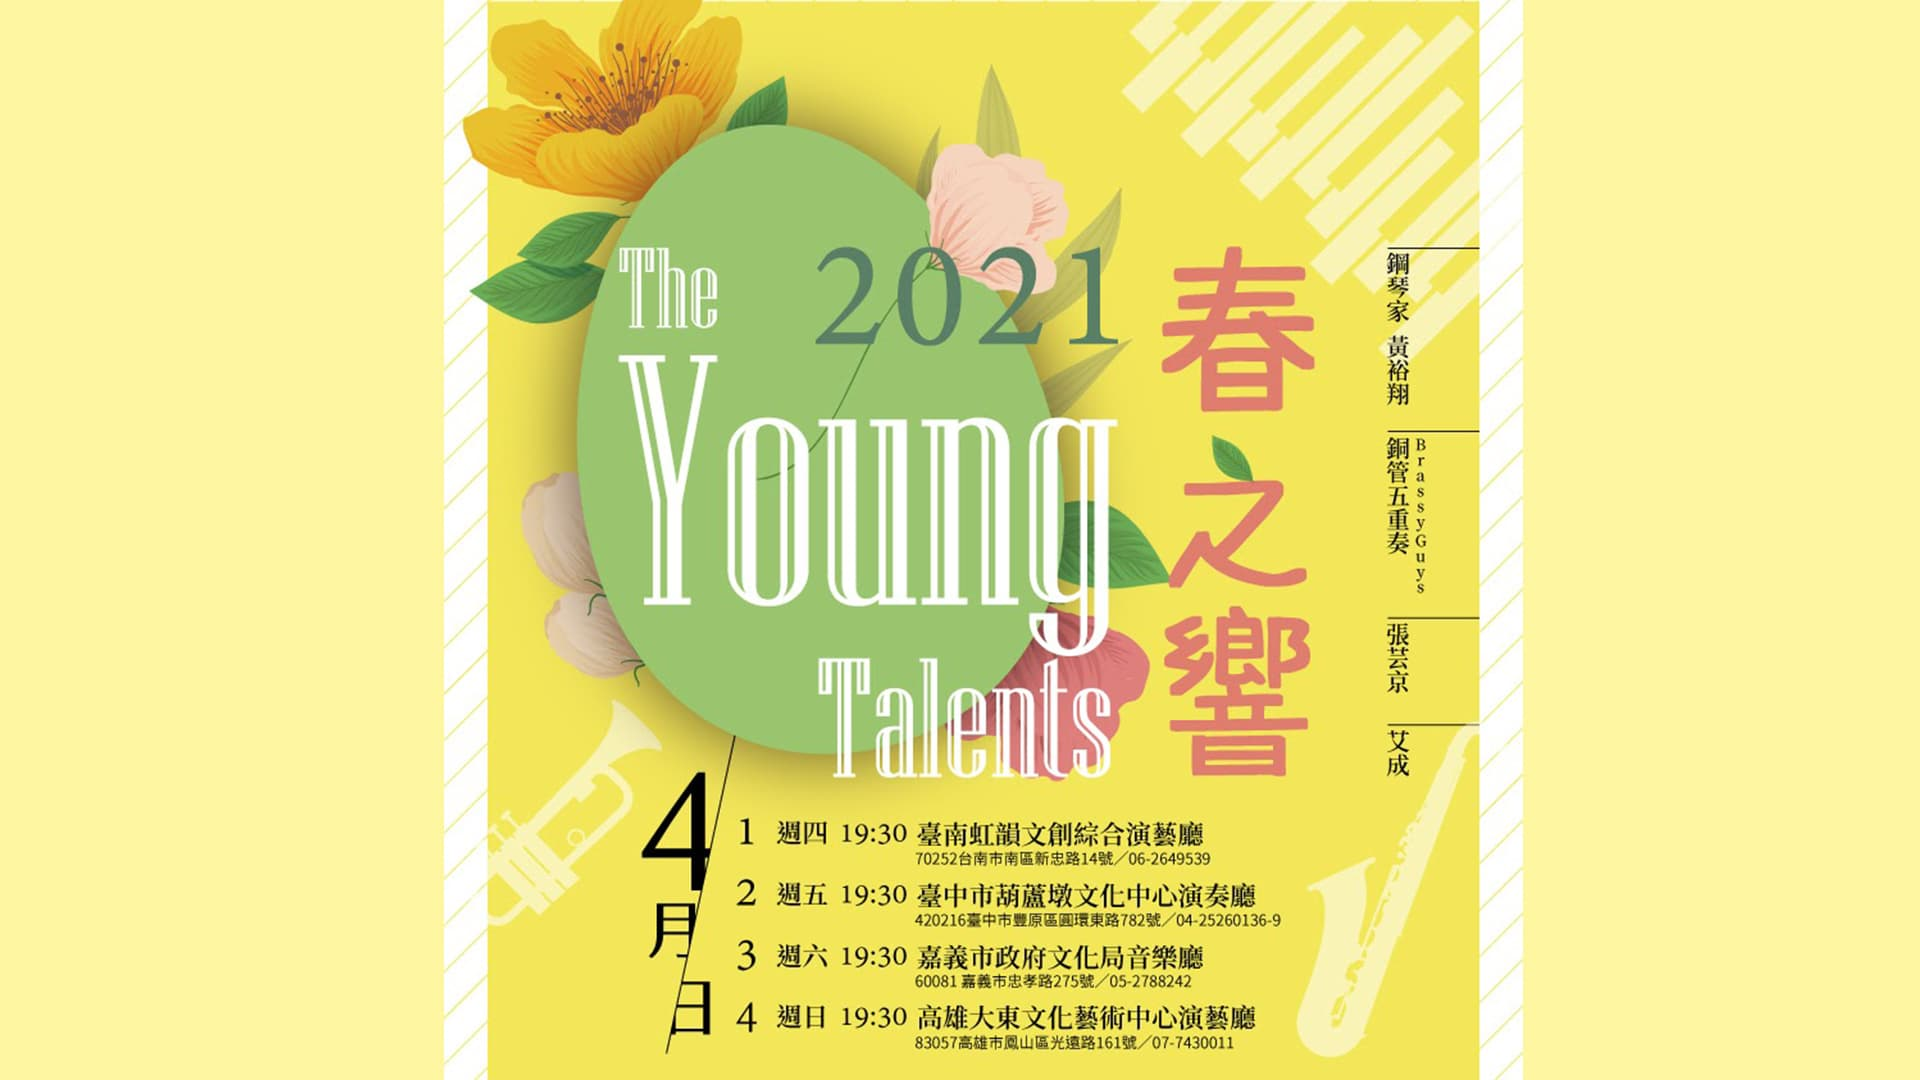 The Young Talents 春之響音樂會 支持來自台灣的好聲音!